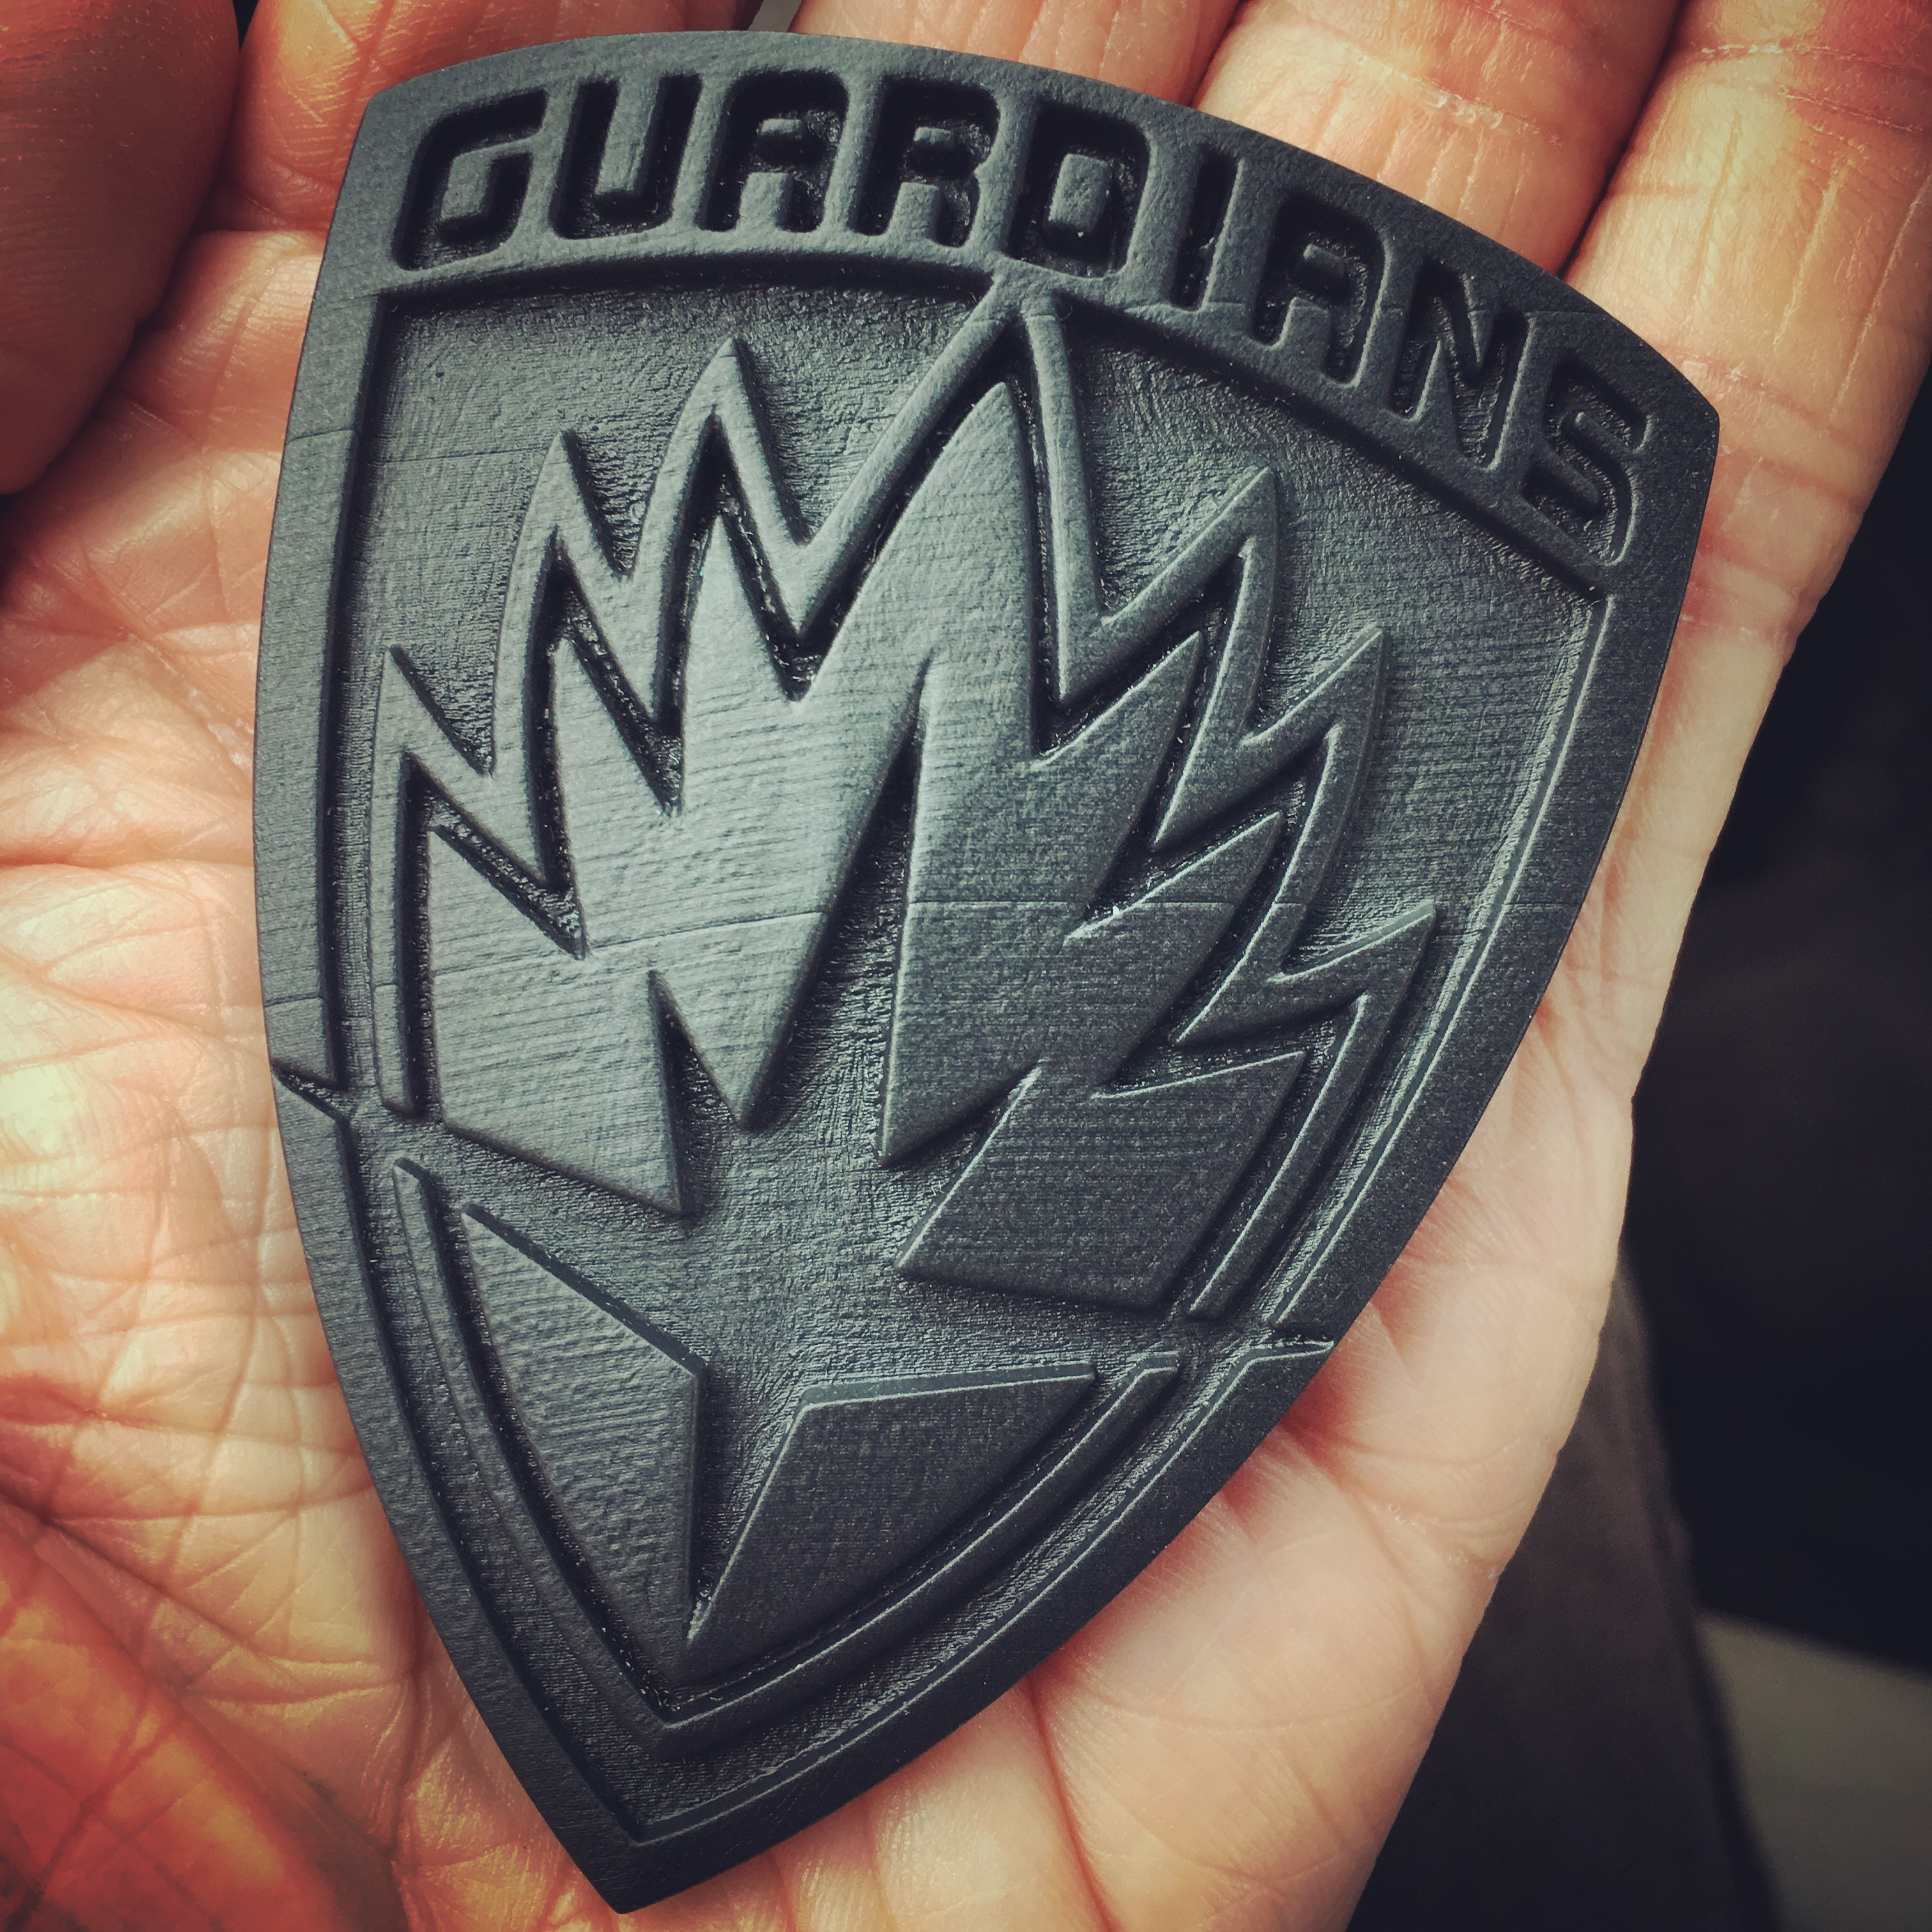 3D Resin Print of Guardians of the Galaxy Badge